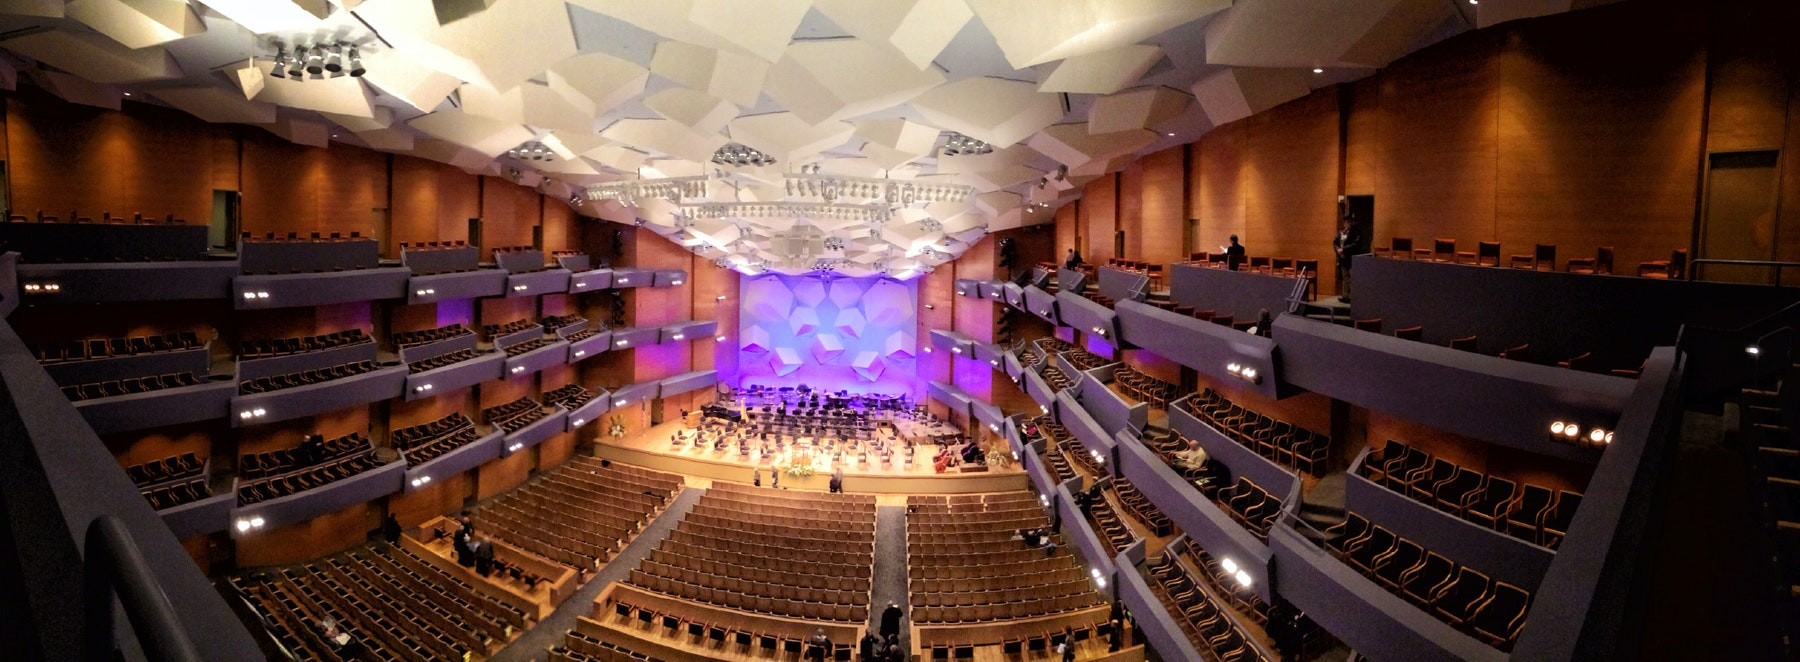 Mn Orchestra stage2